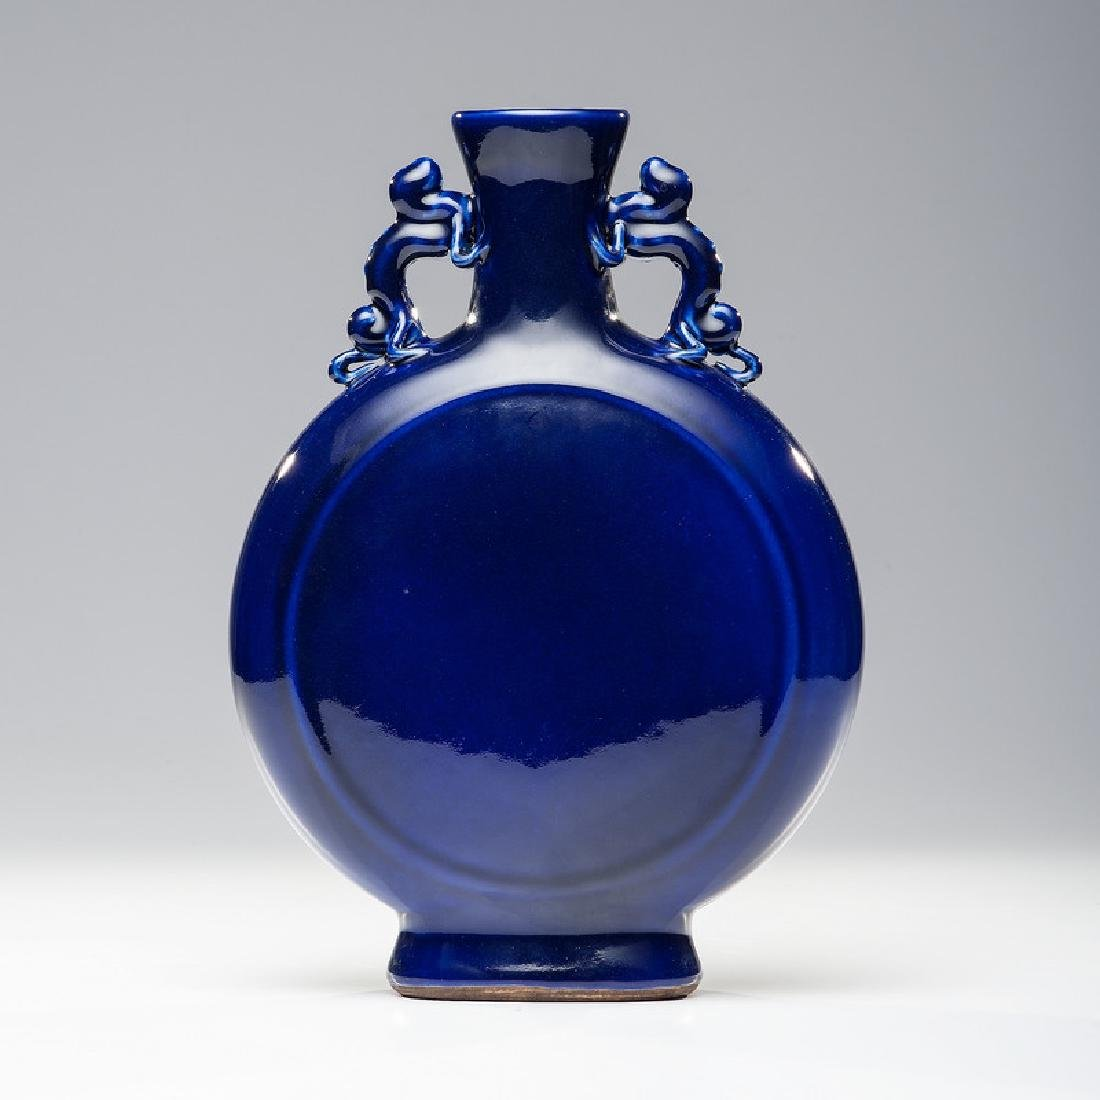 Chinese Porcelain Blue Flask Form Vase